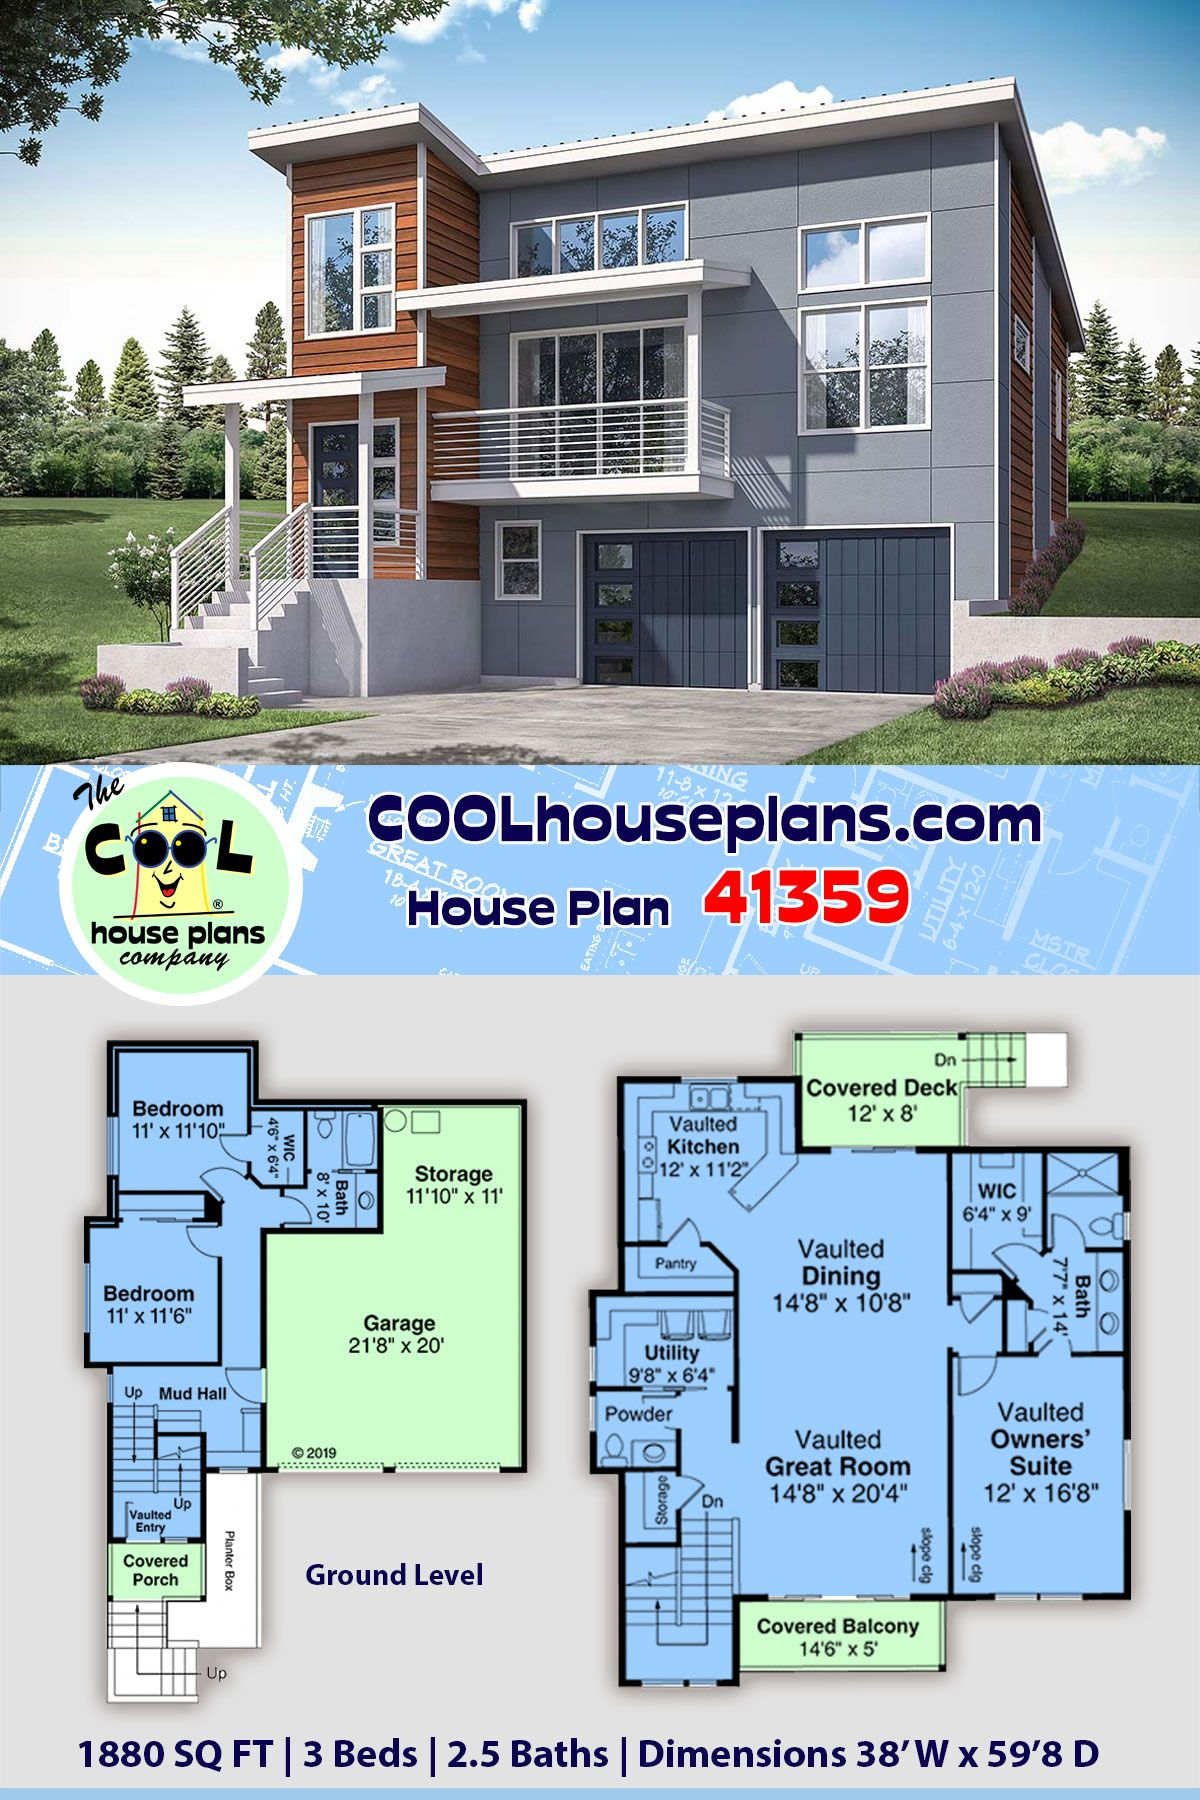 Narrow Lot Style House Plan 41359 With 3 Bed 3 Bath 2 Car Garage In 2020 House Plans Modern House Plans Sims House Plans